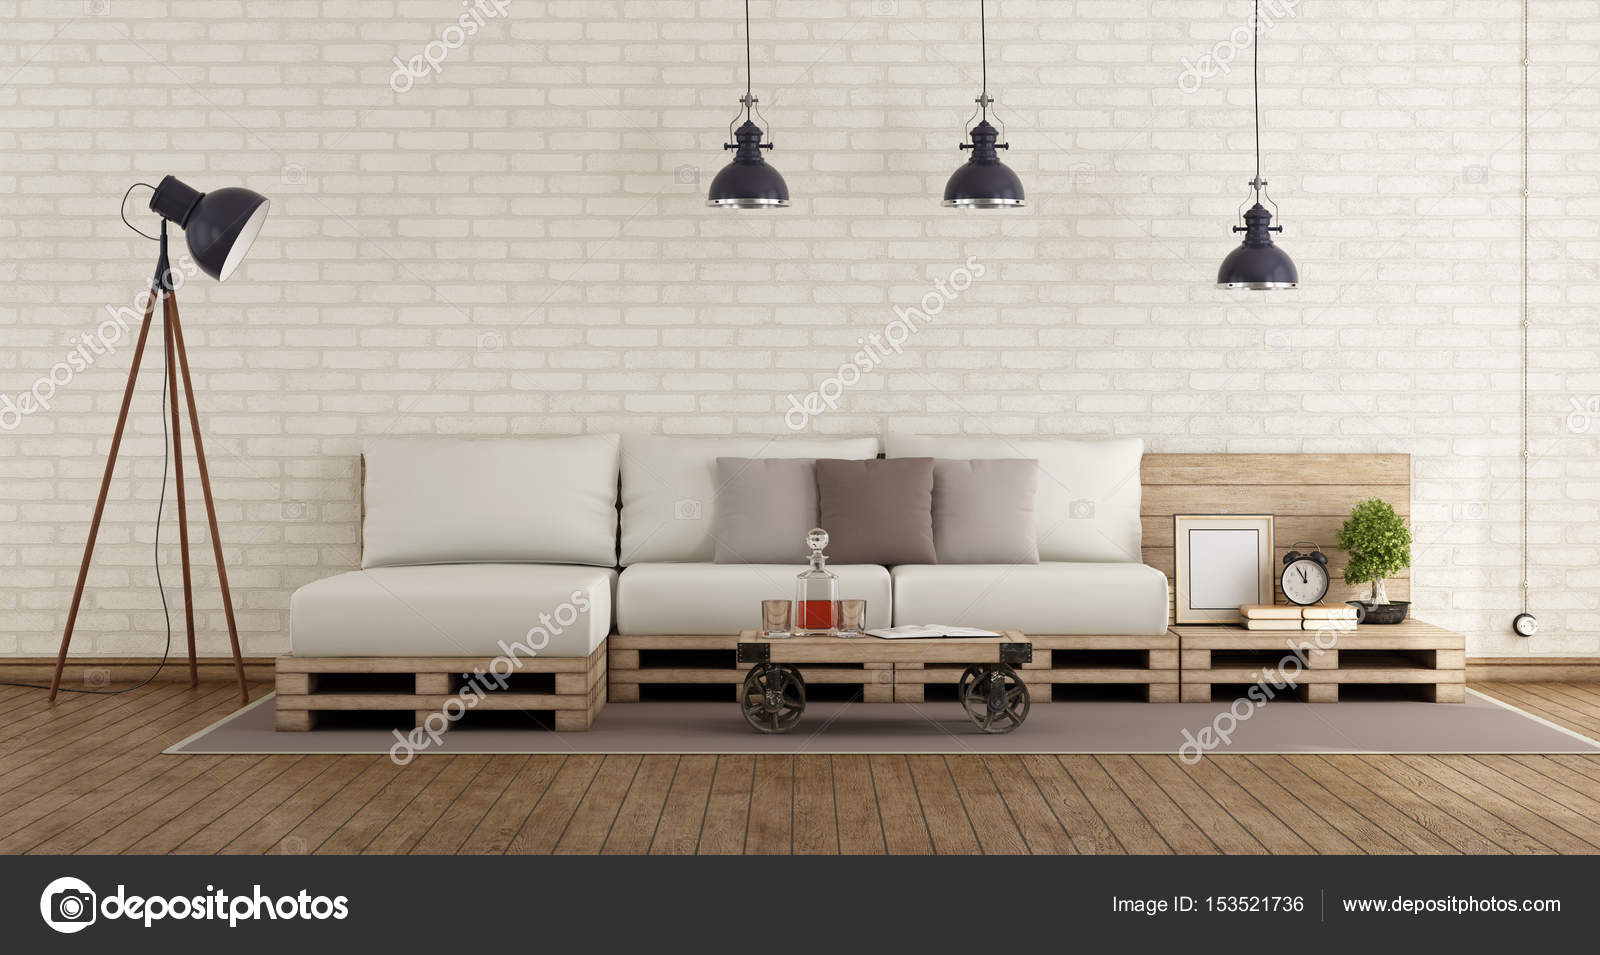 wheel retro furniture image photo and stock pallet white swing legal room with living